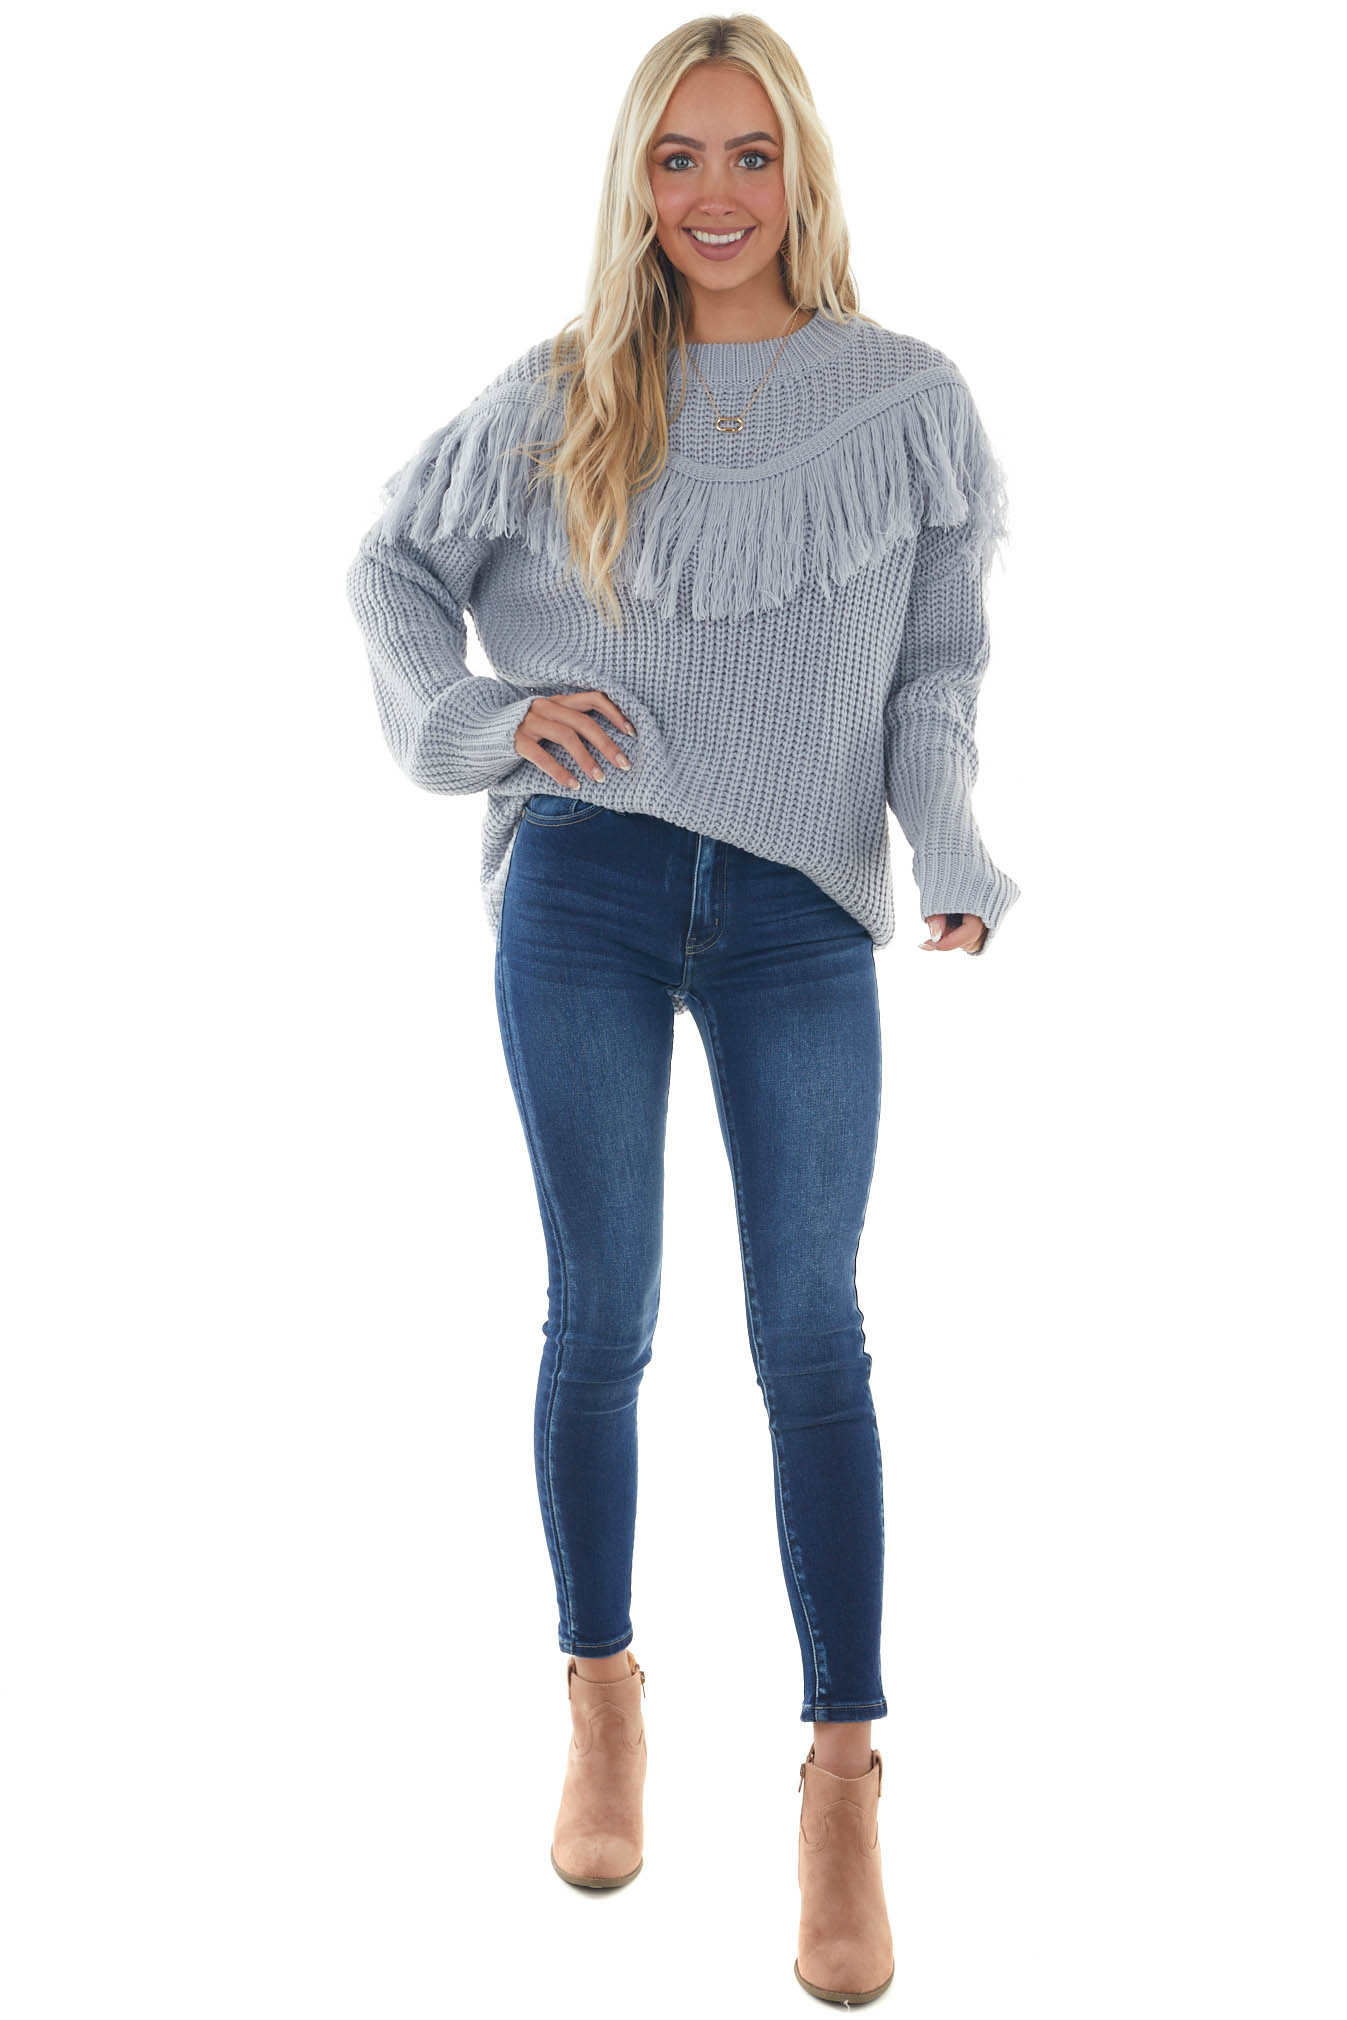 Pastel Blue Knit Sweater with Tassel Detail